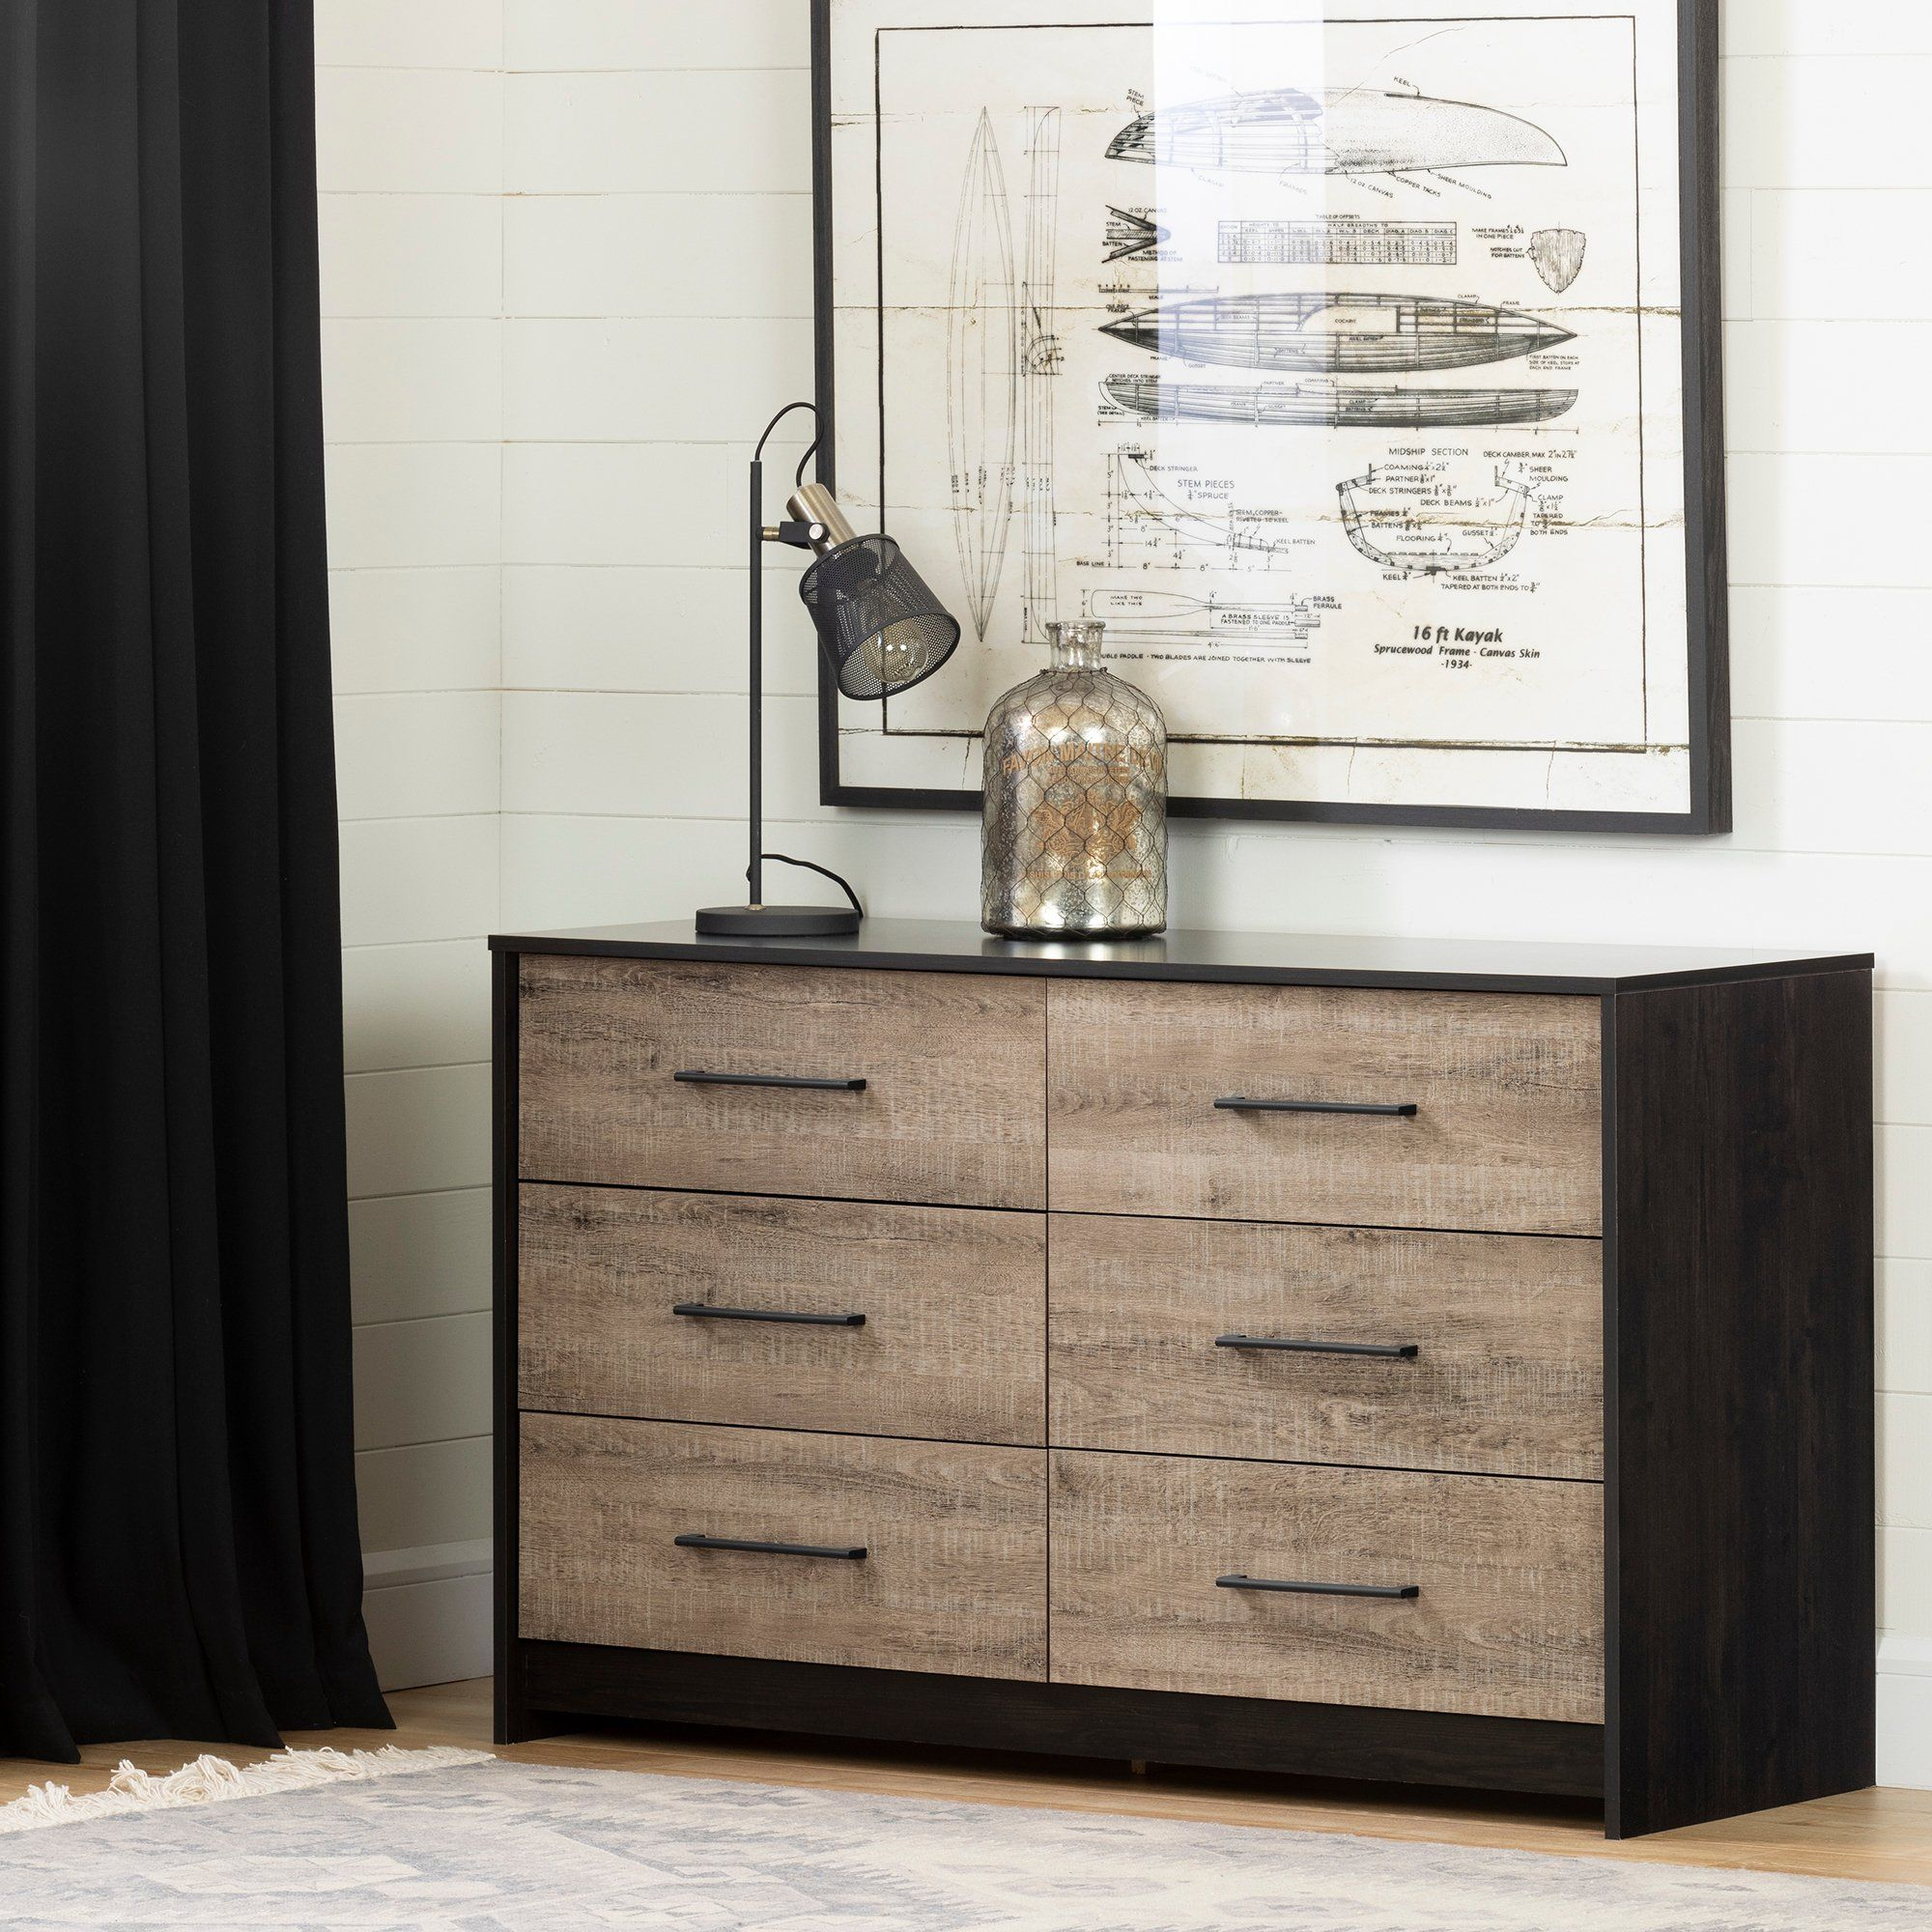 Contemporary Weathered Oak And Brown 6 Drawer Dresser Weathered Oak Modern Dresser Dresser Storage [ 2000 x 2000 Pixel ]